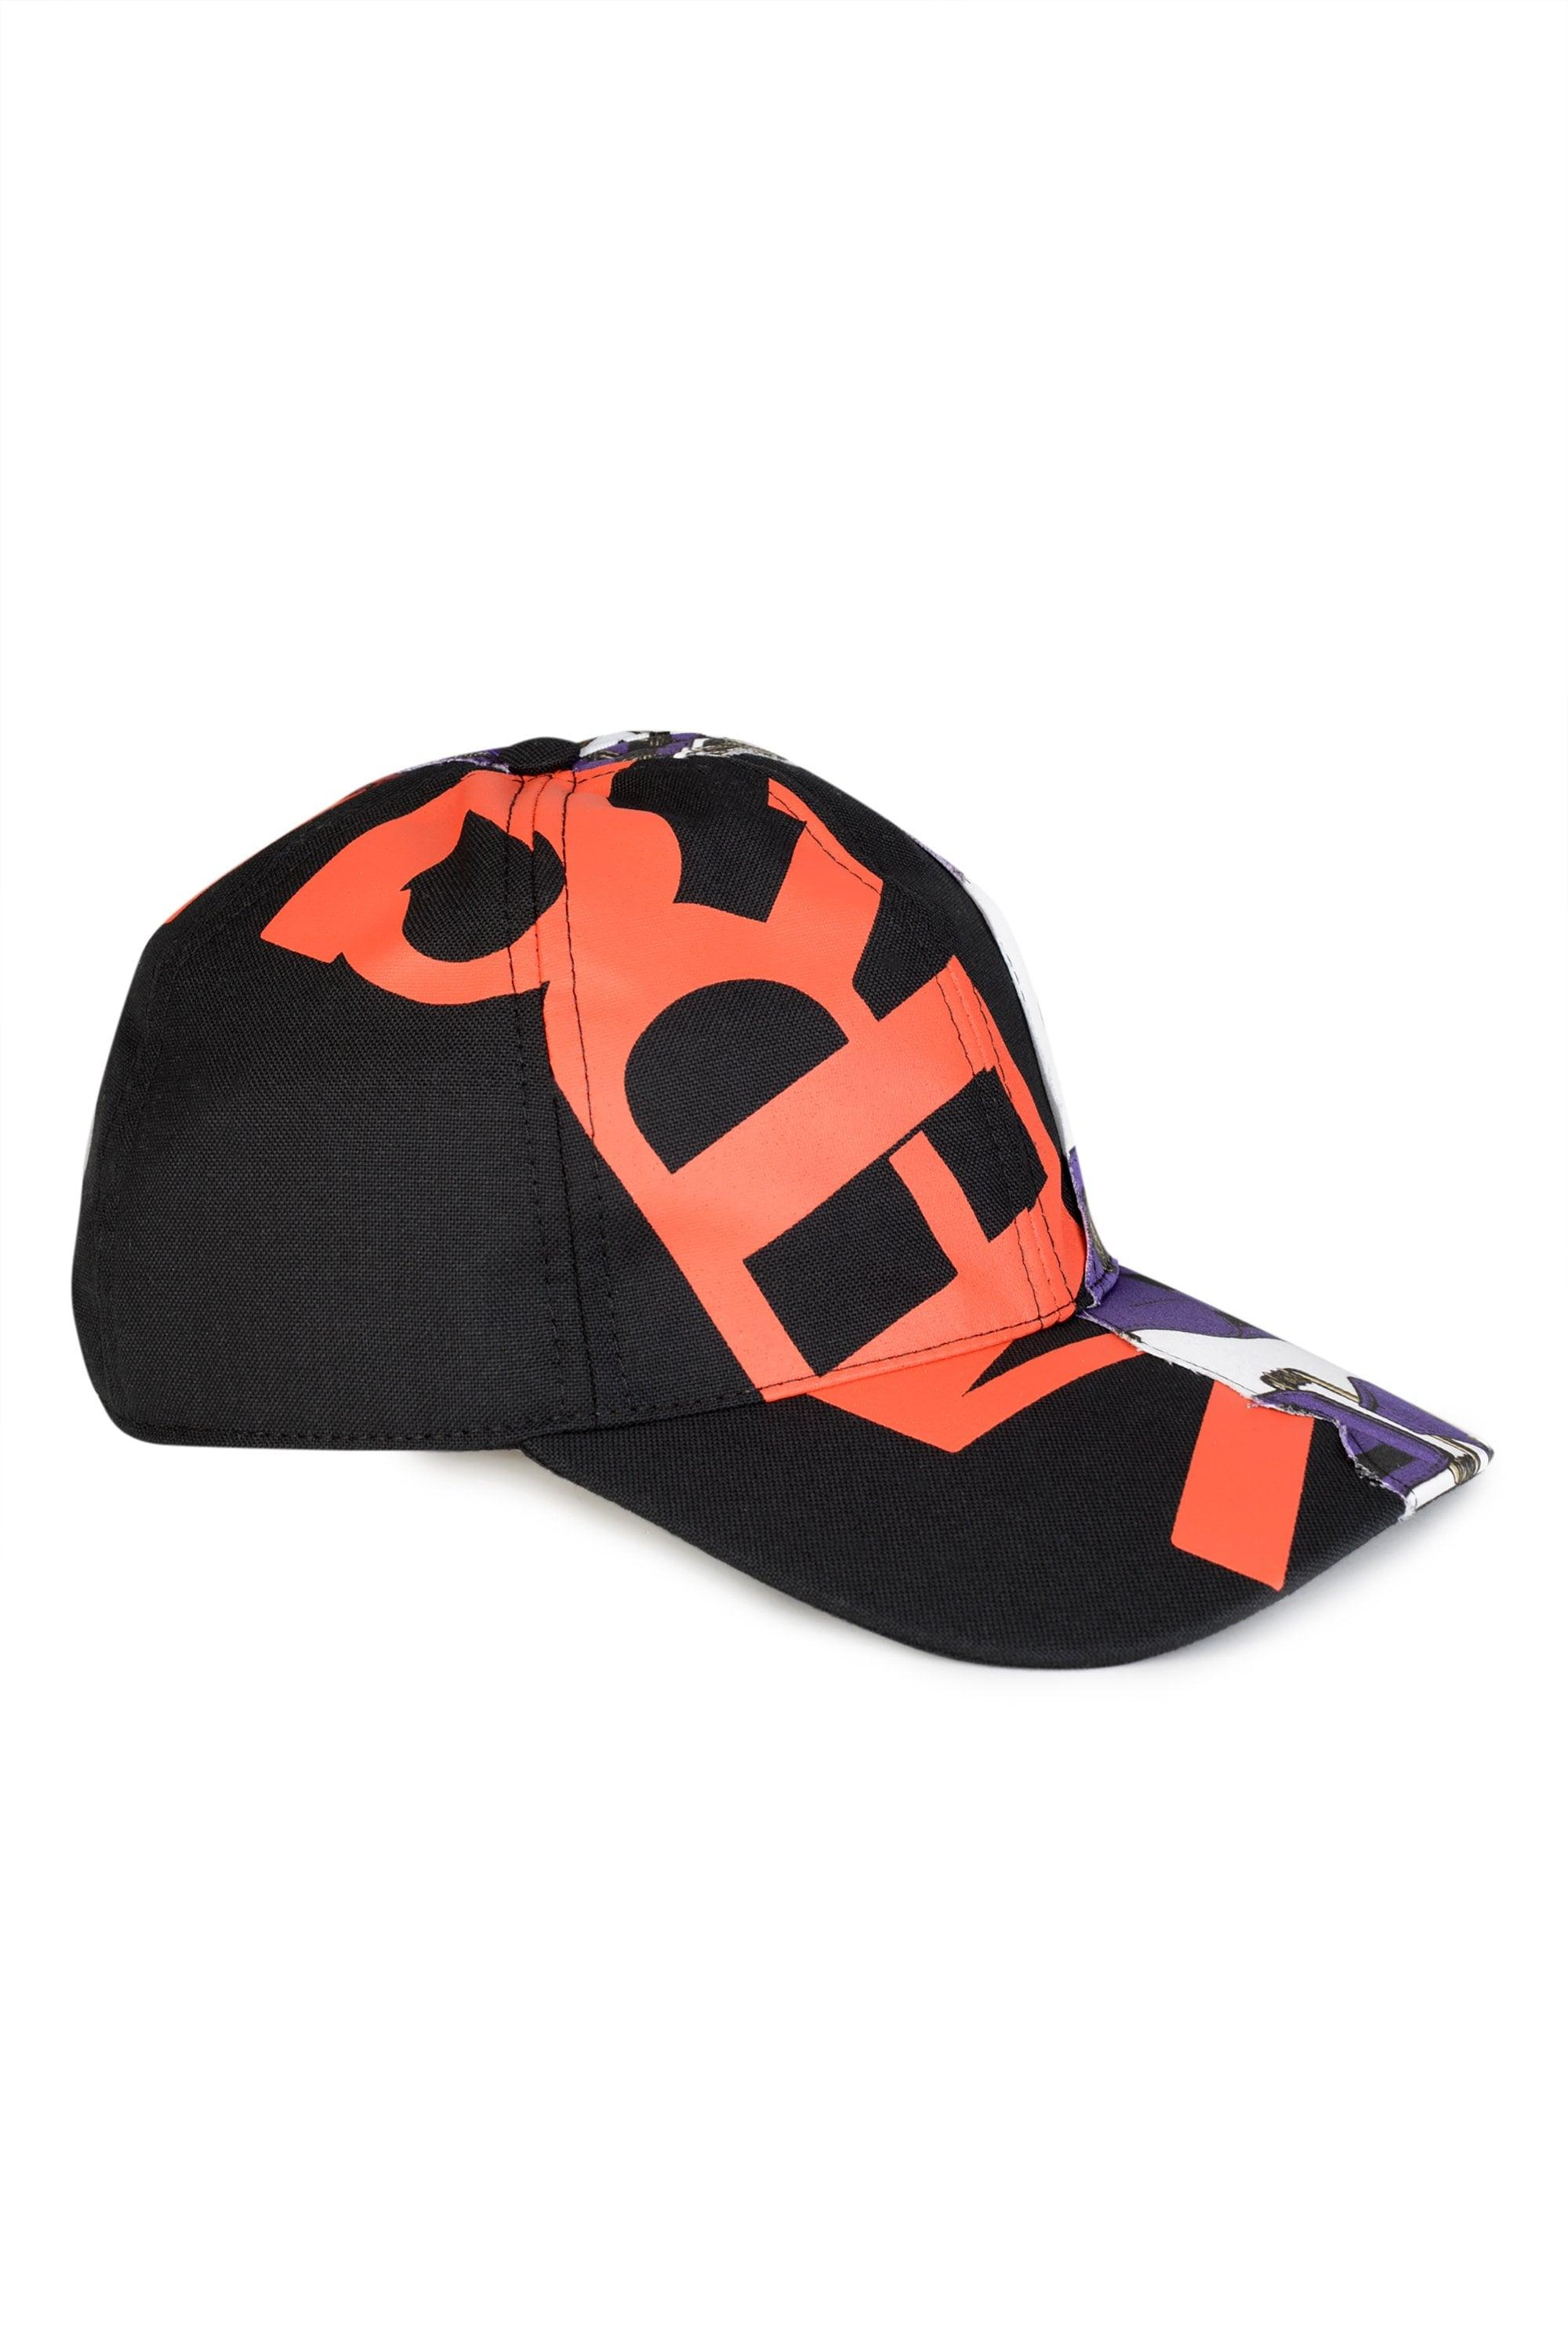 a653a8ed9a6 Versace Red Printed Logo Baseball Cap for Men - Lyst